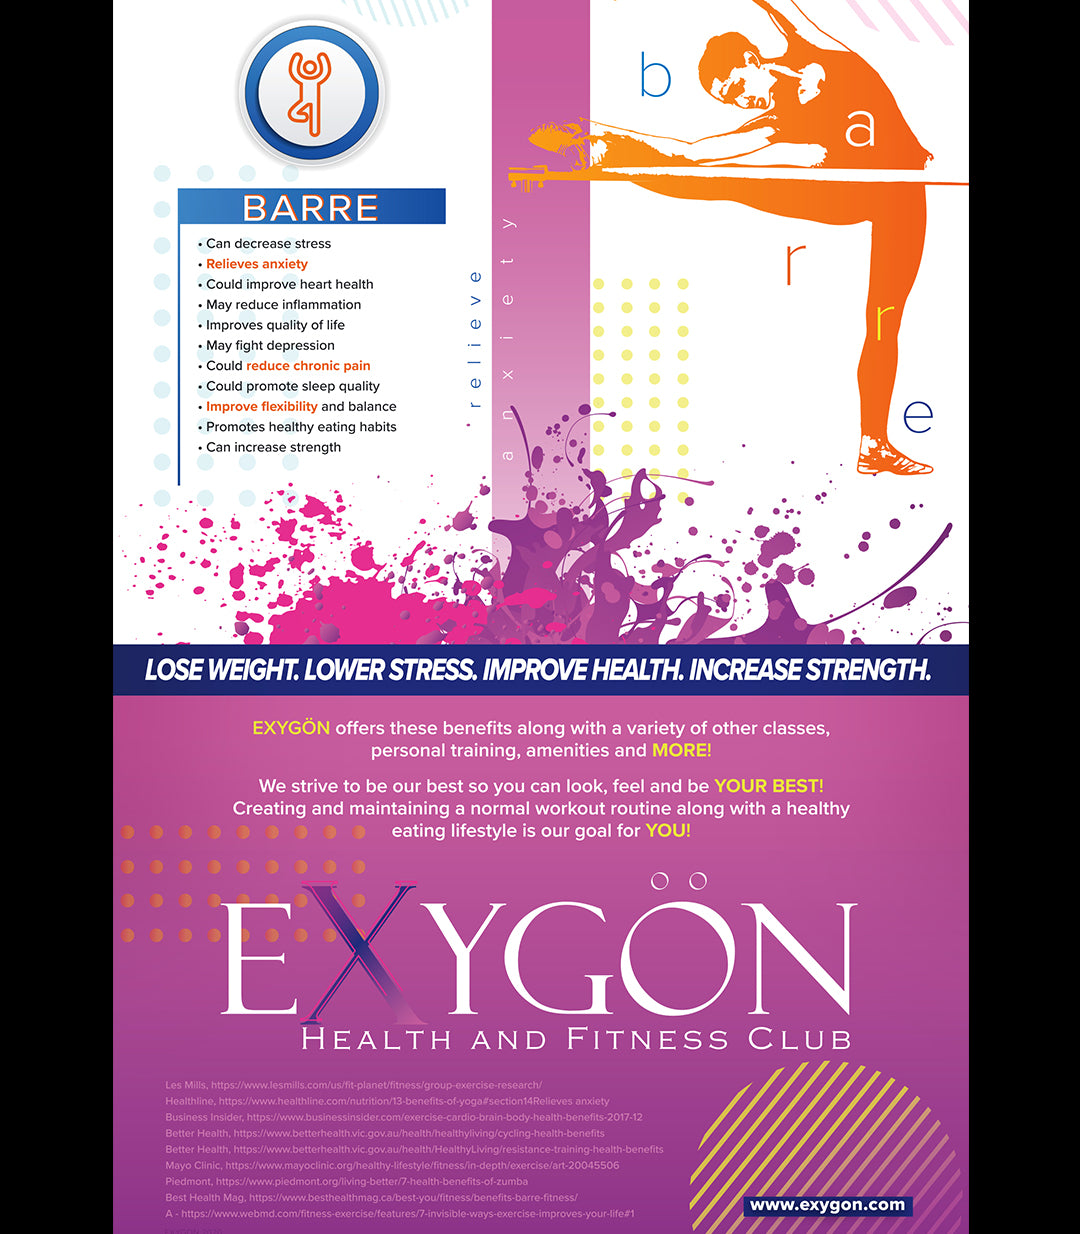 Exygon Health and Fitness Club